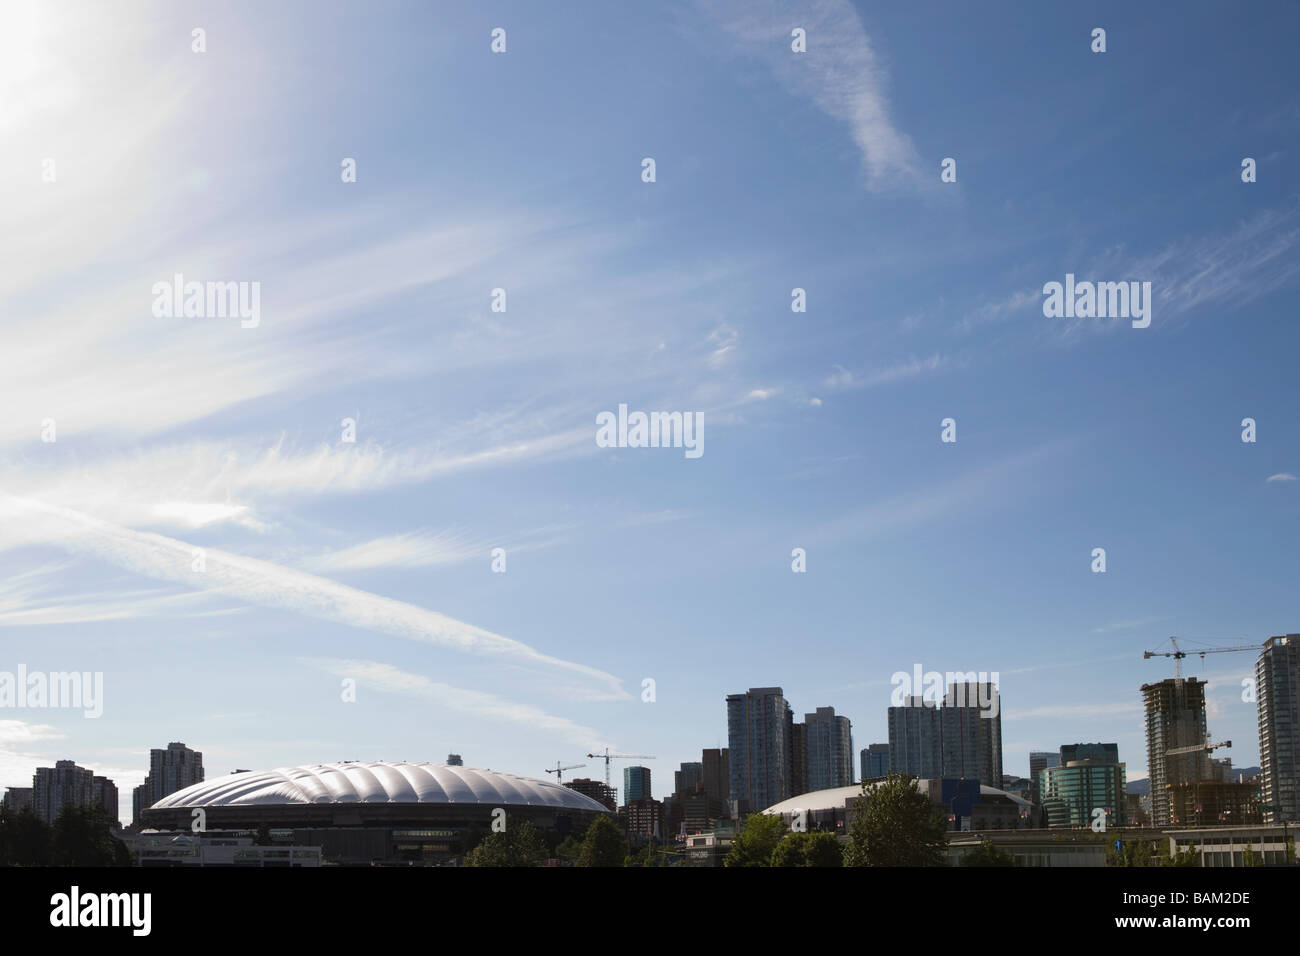 Stadiums in vancouver - Stock Image